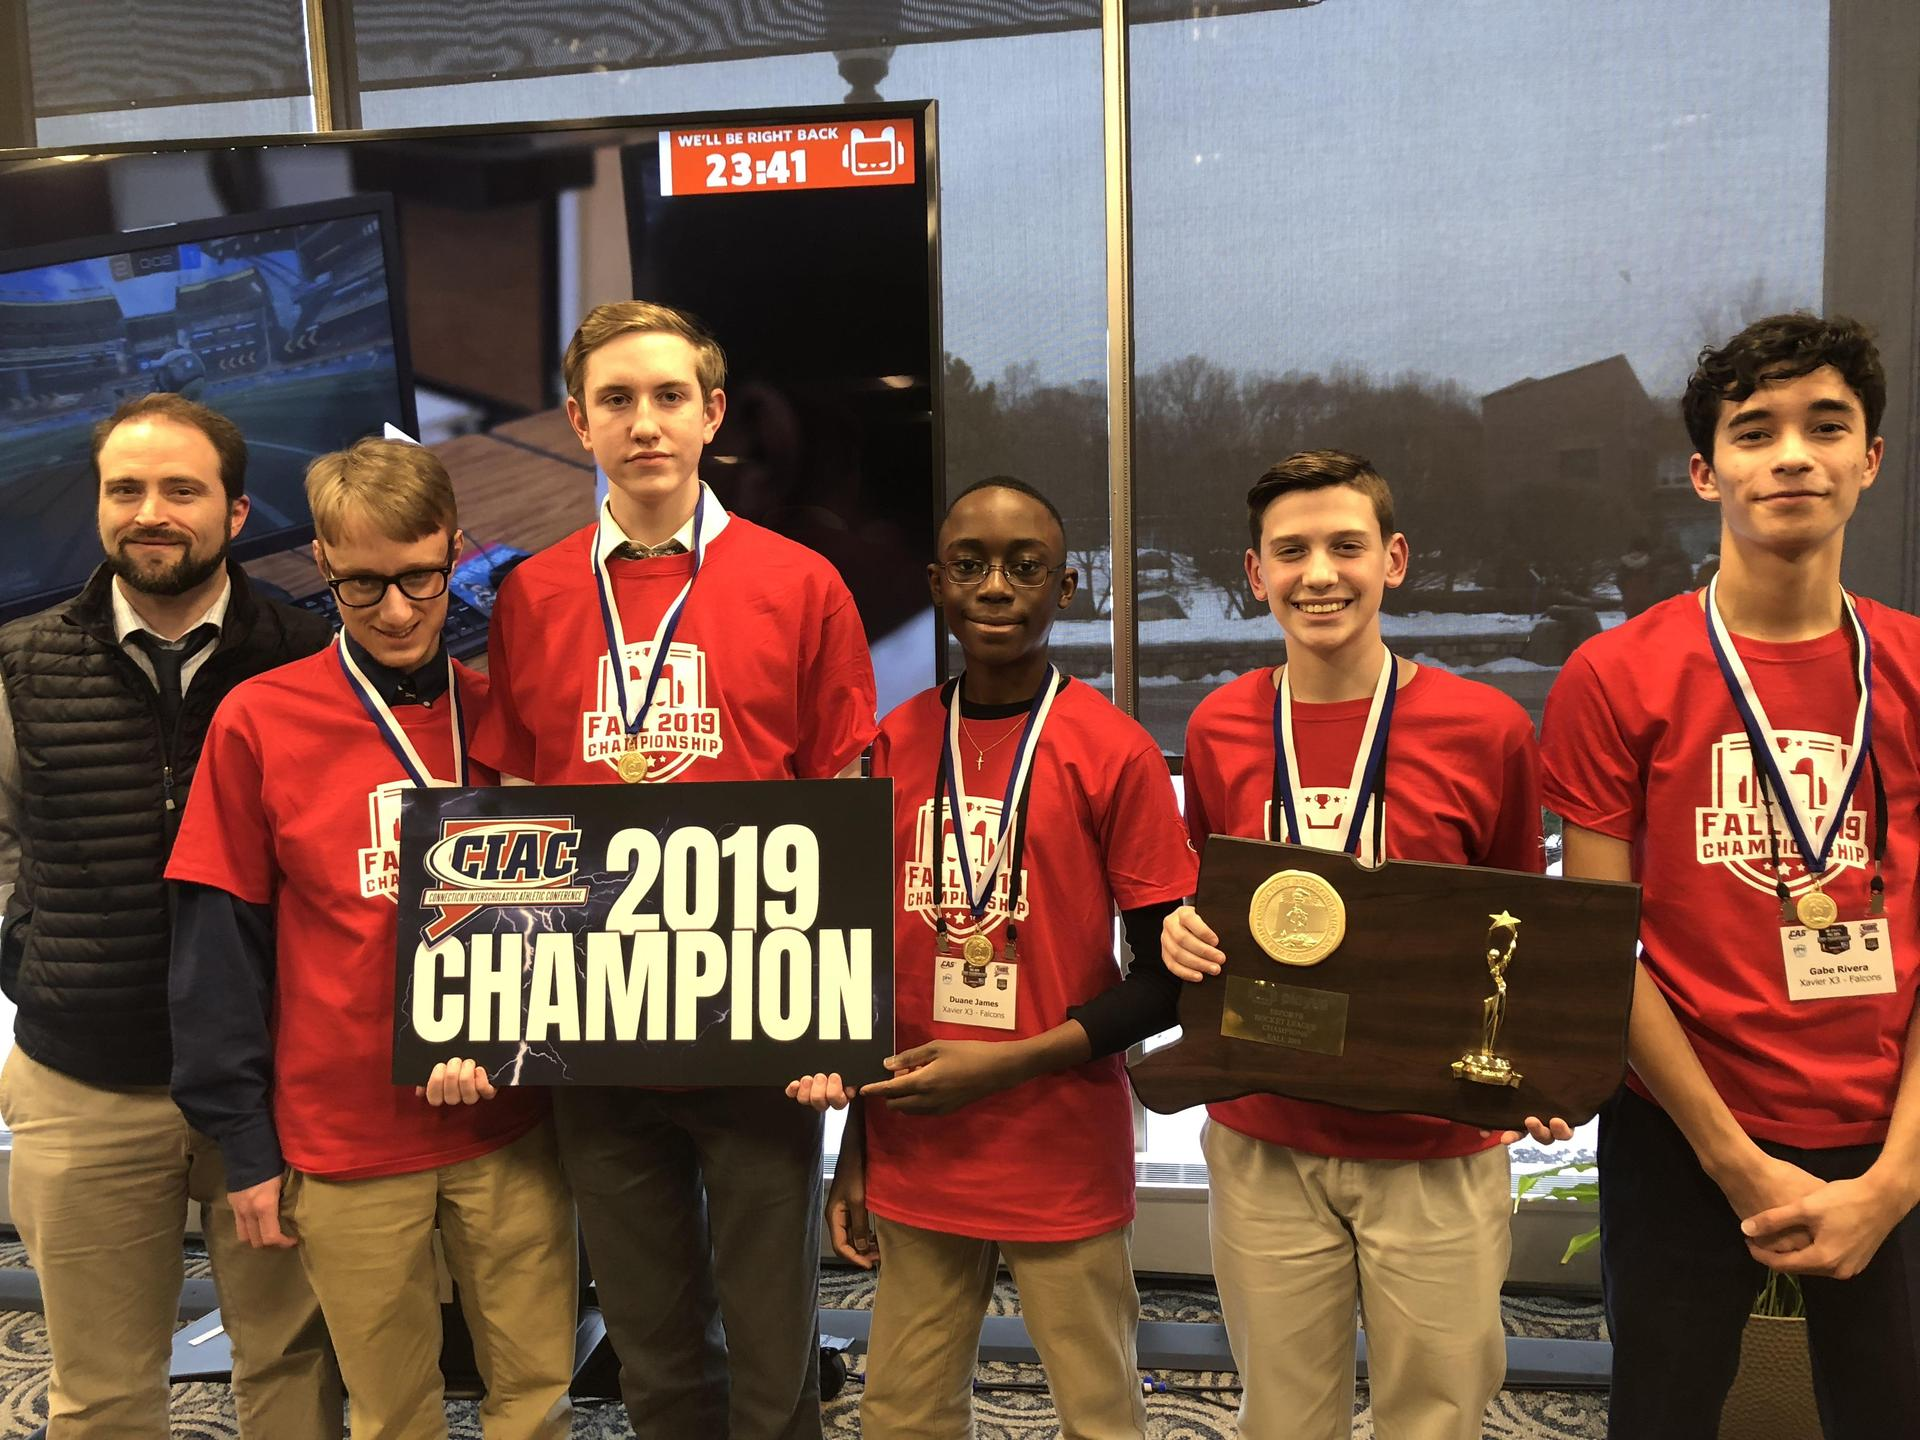 Xavier High School's Rocket League champions for 2019-2020 season.